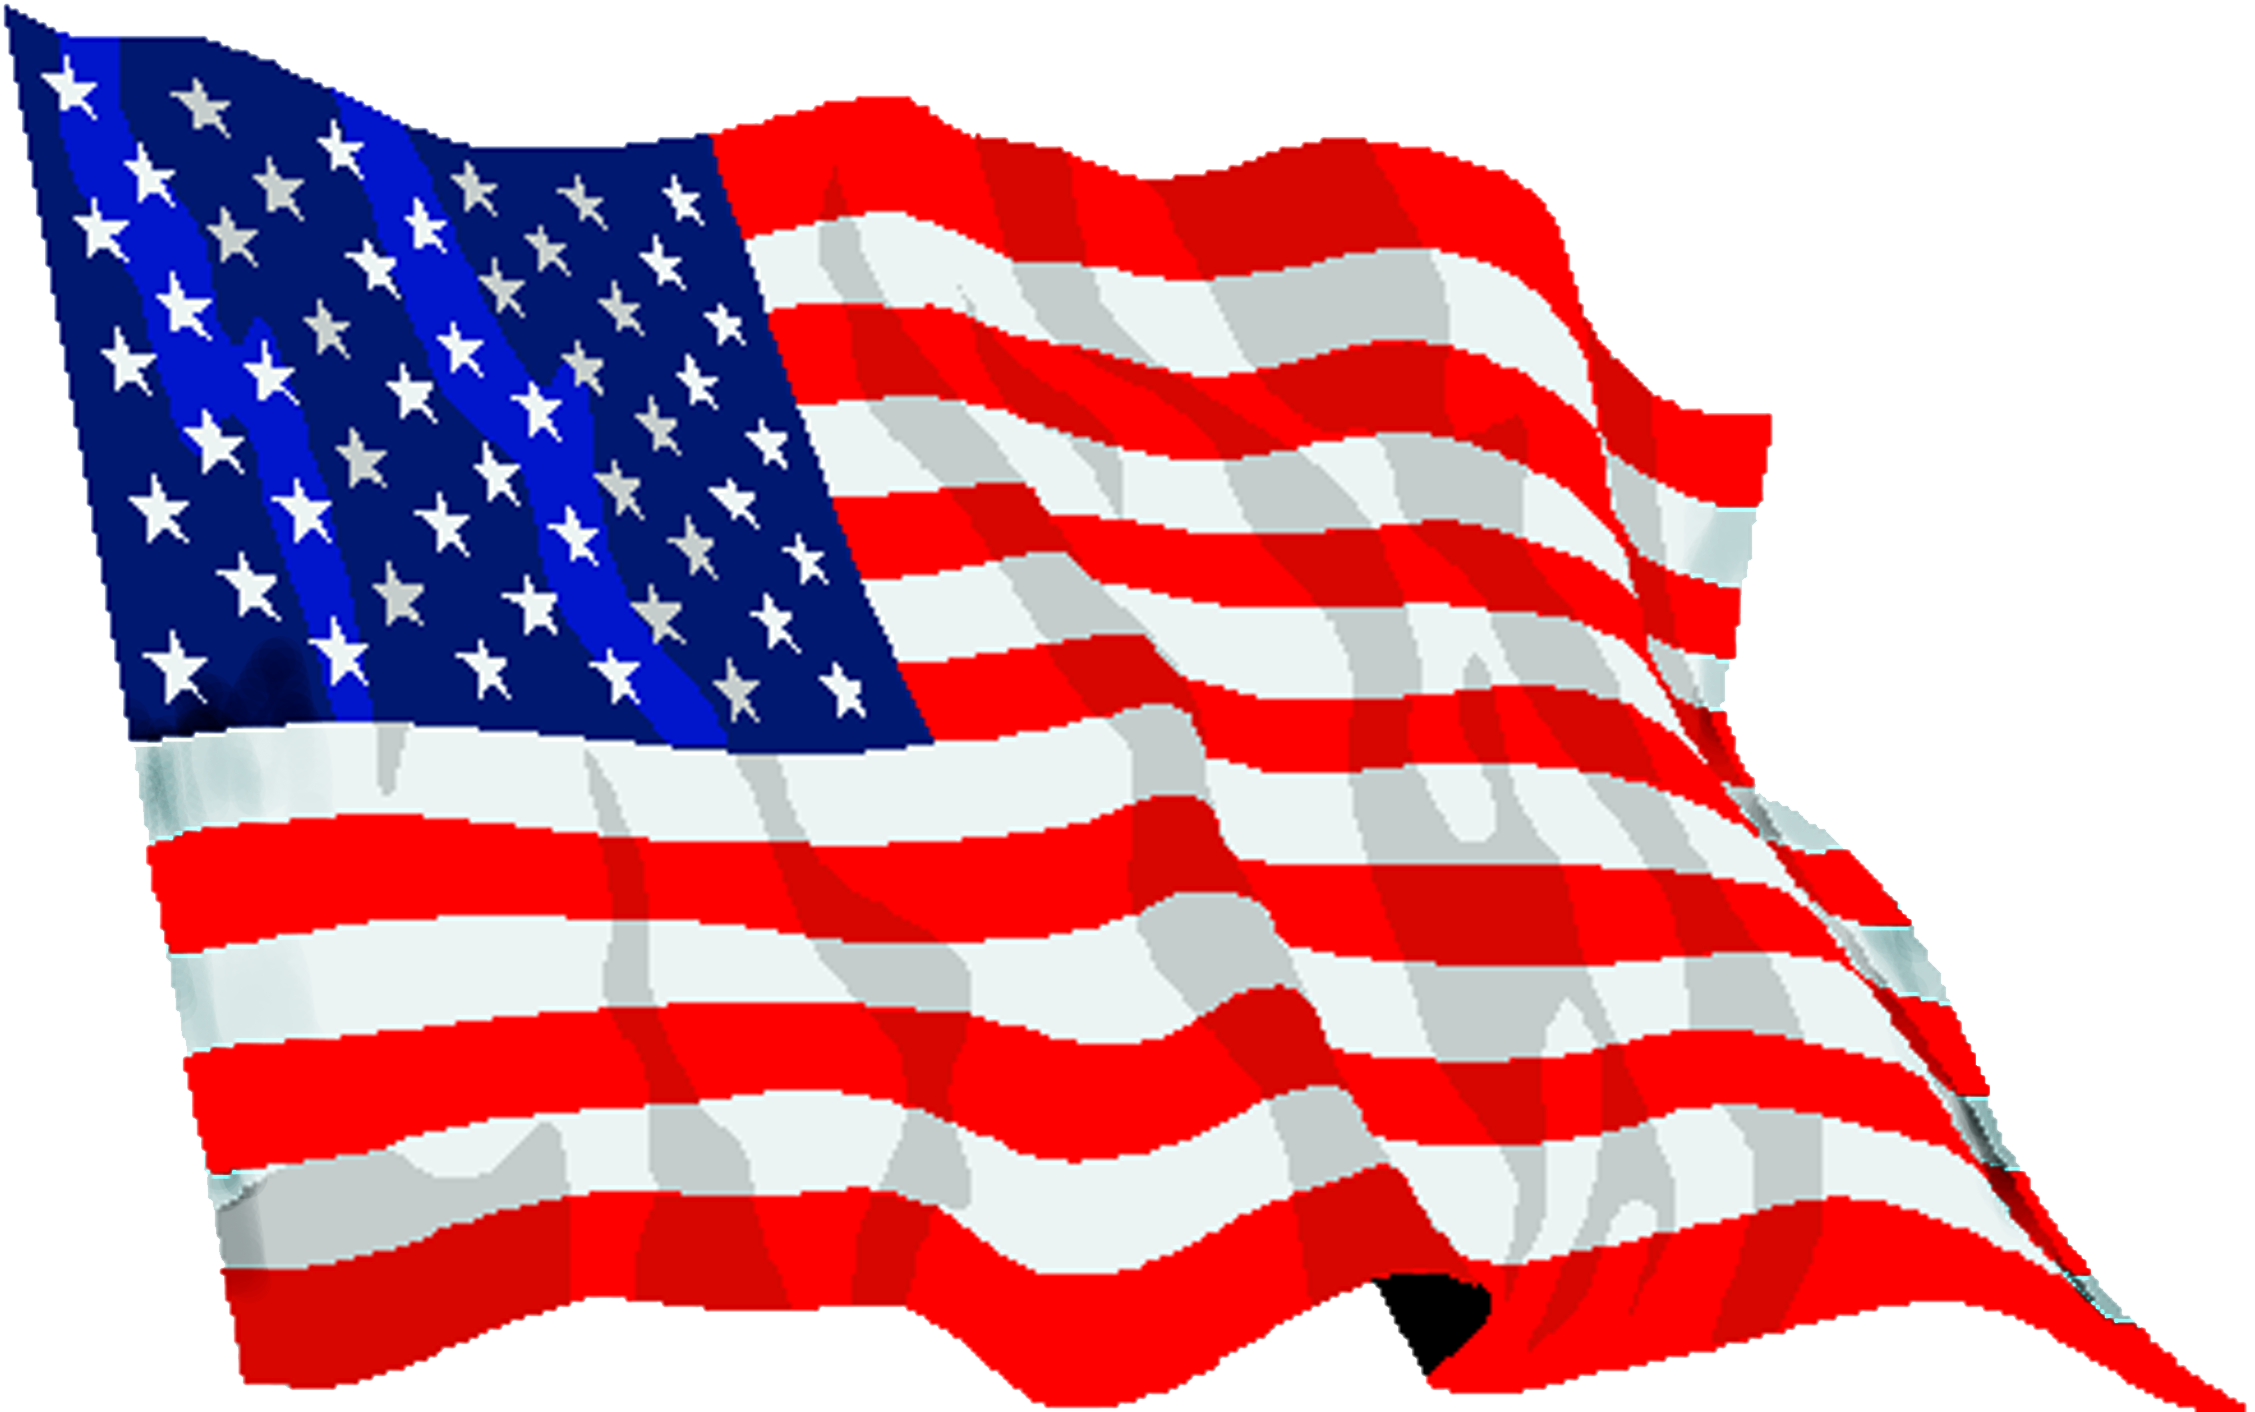 American Flag Icon Png - Viewing Gallery - ClipArt Best ...